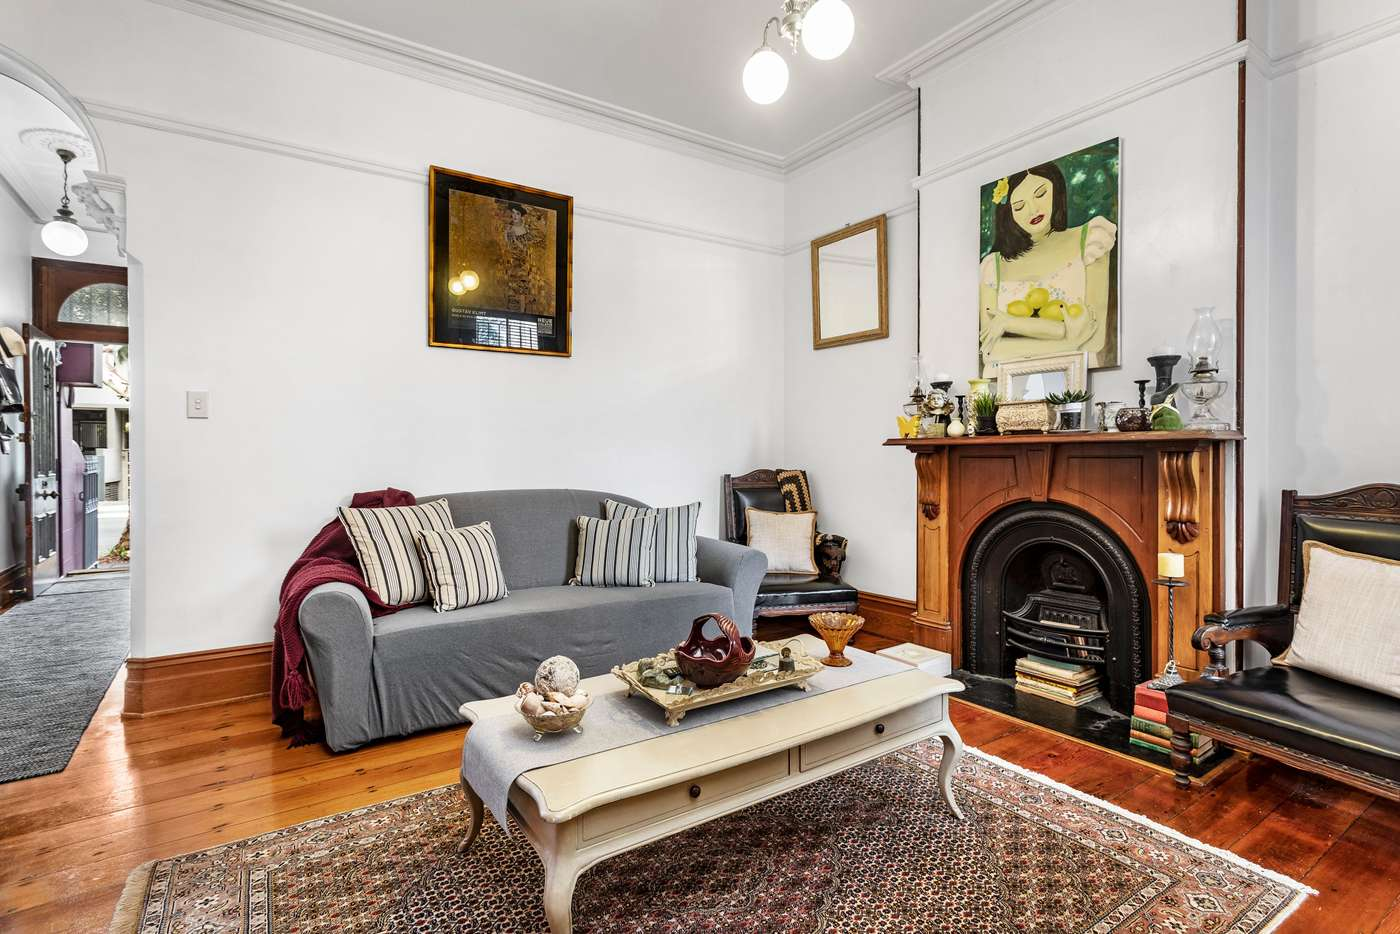 Sixth view of Homely house listing, 480 Wilson Street, Darlington NSW 2008